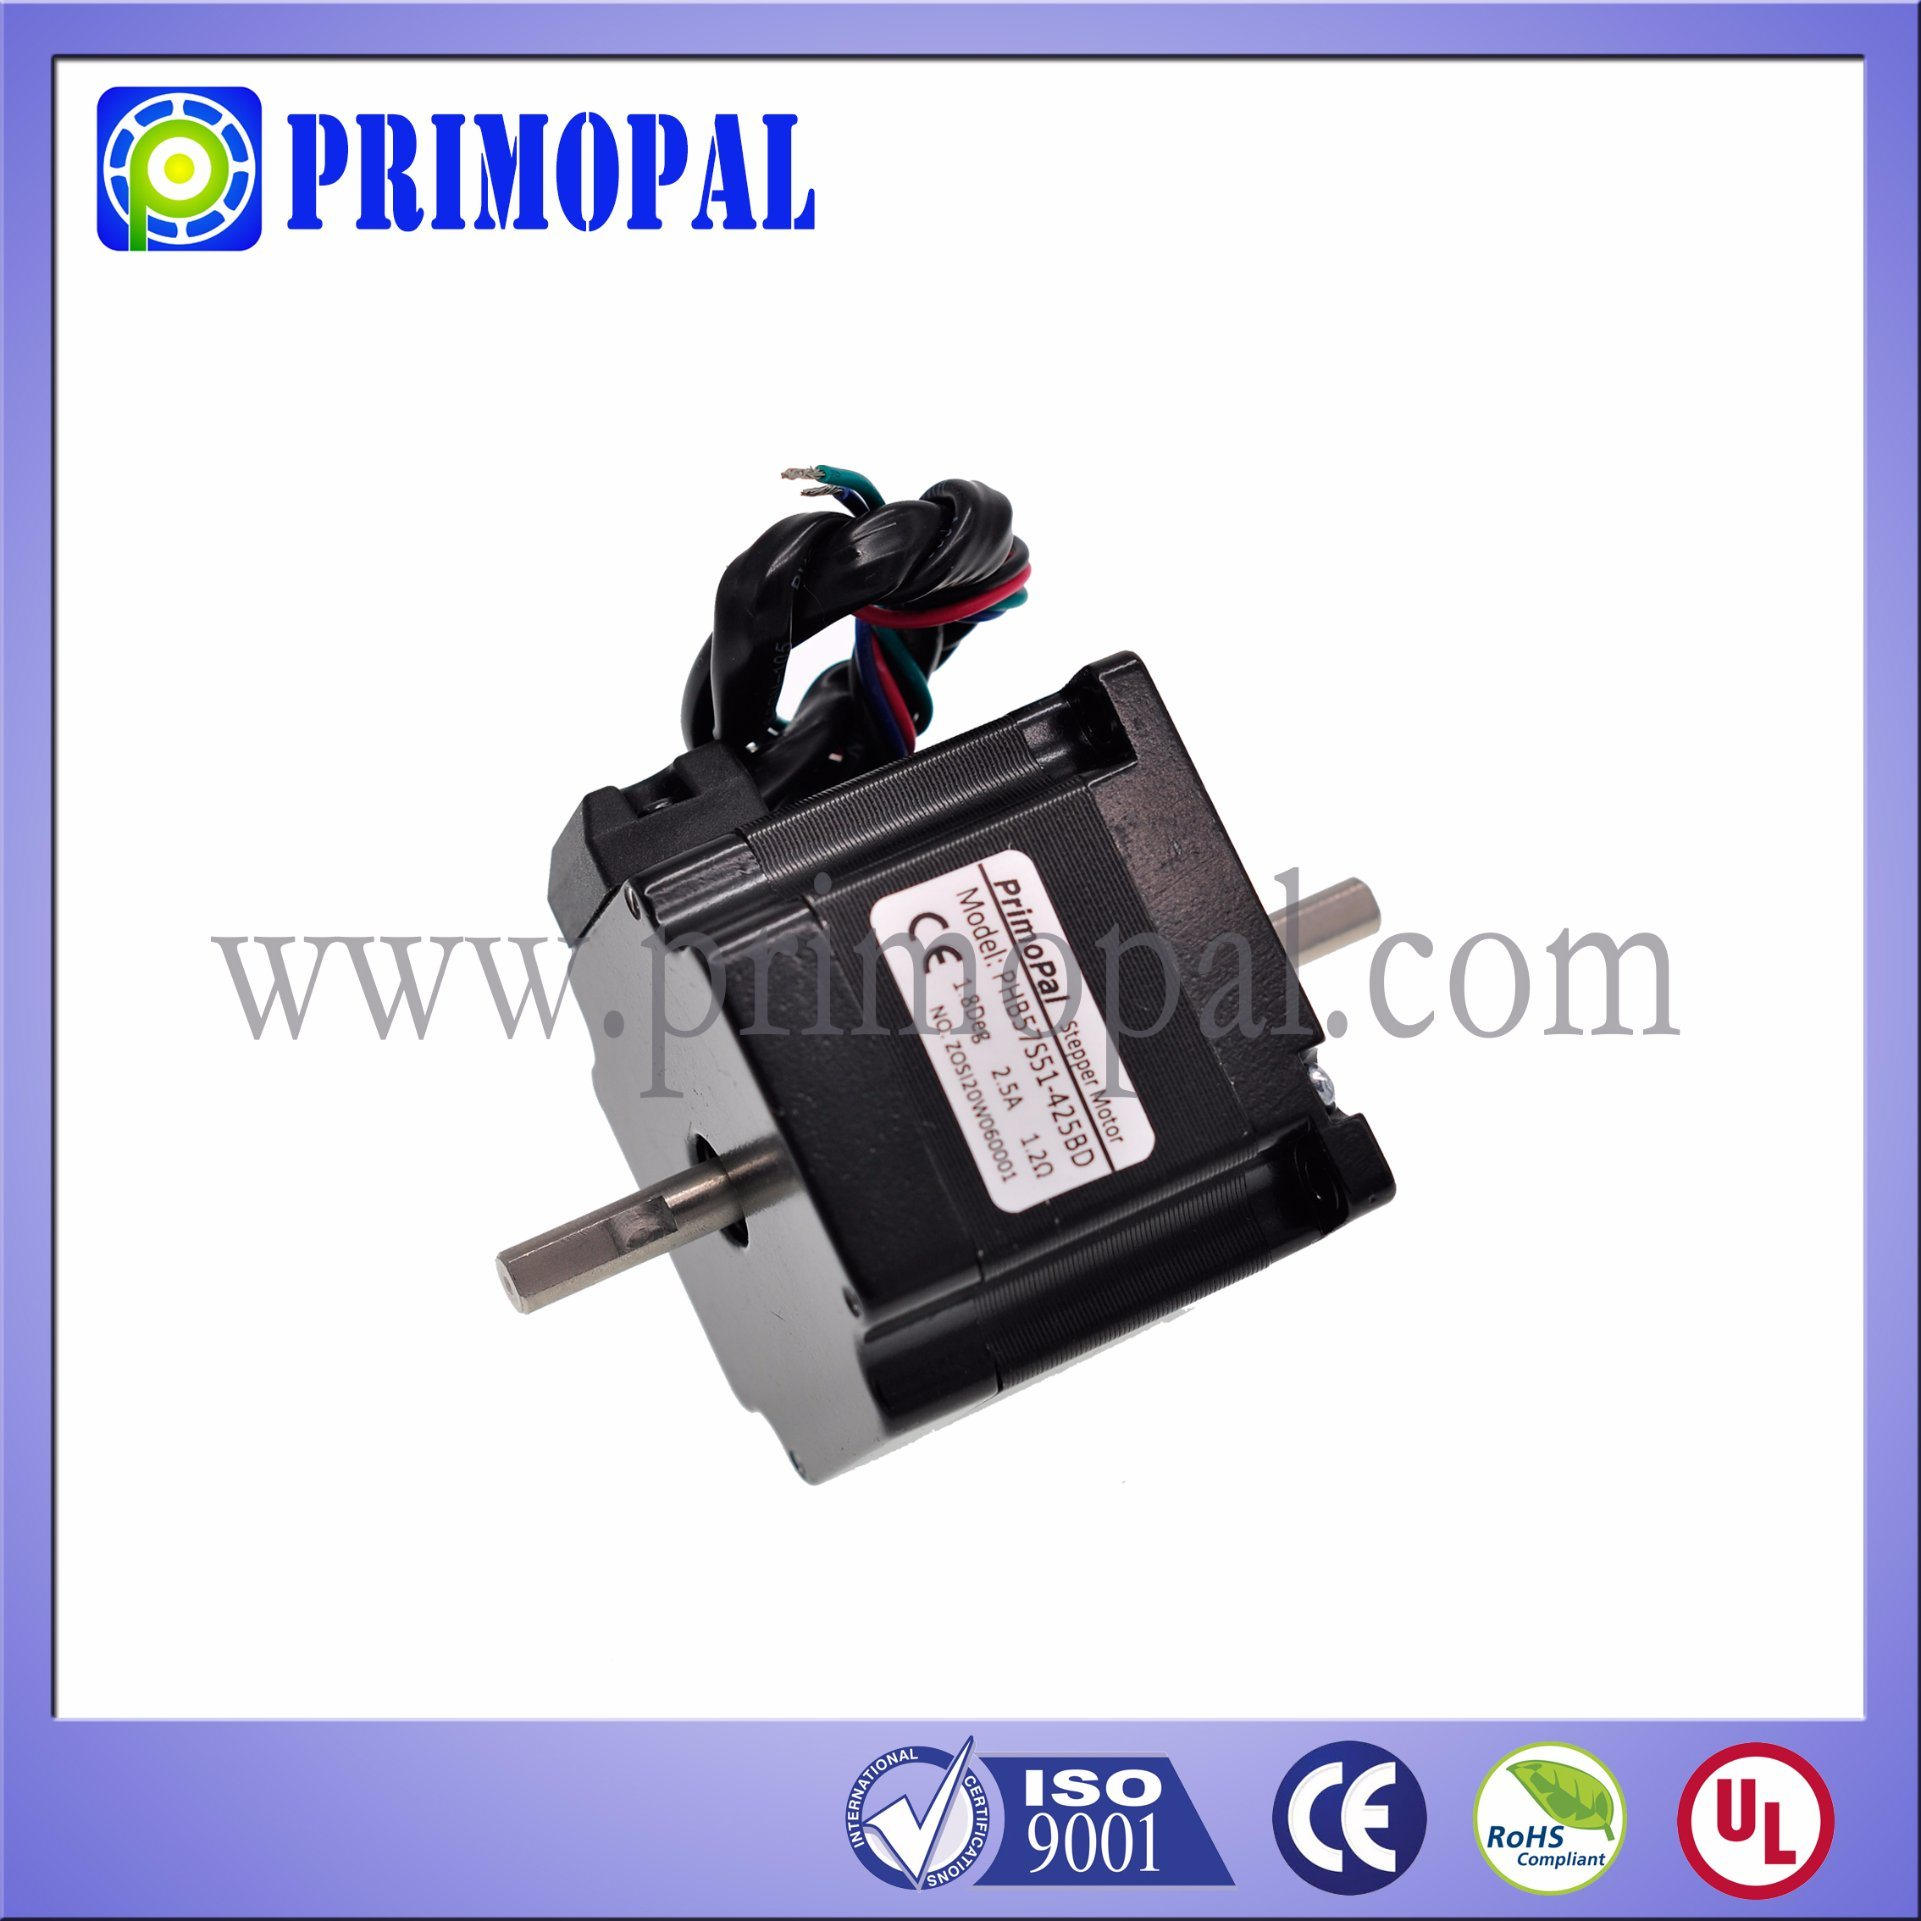 0.9 Step Angle NEMA 23 Square Stepper Motor for Industrial Printer